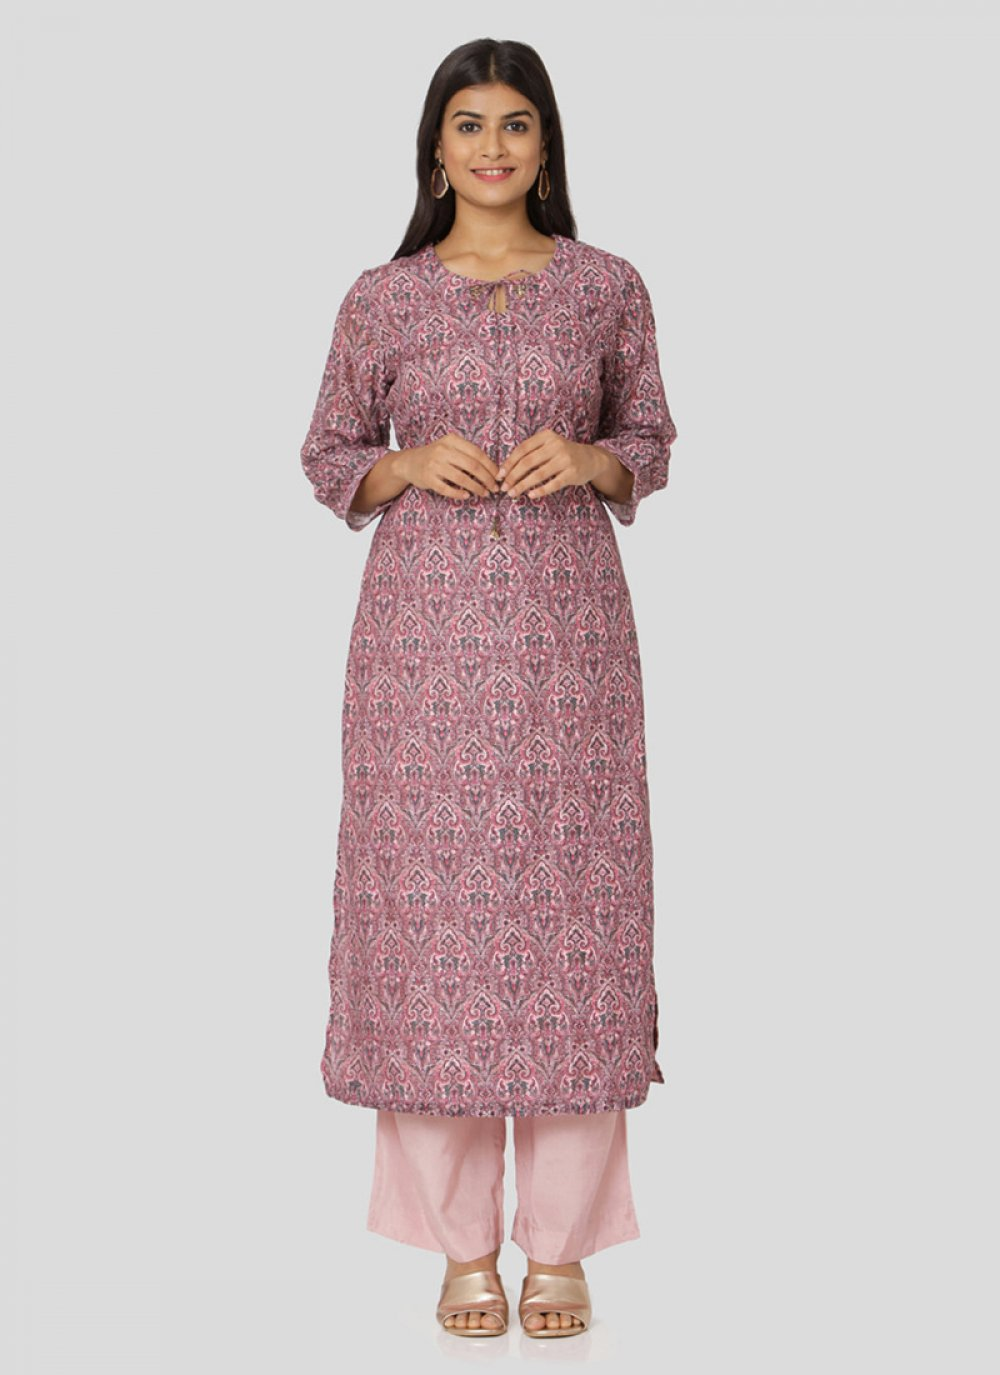 Multi Chanderi Salwar Kameez in Multi Colour